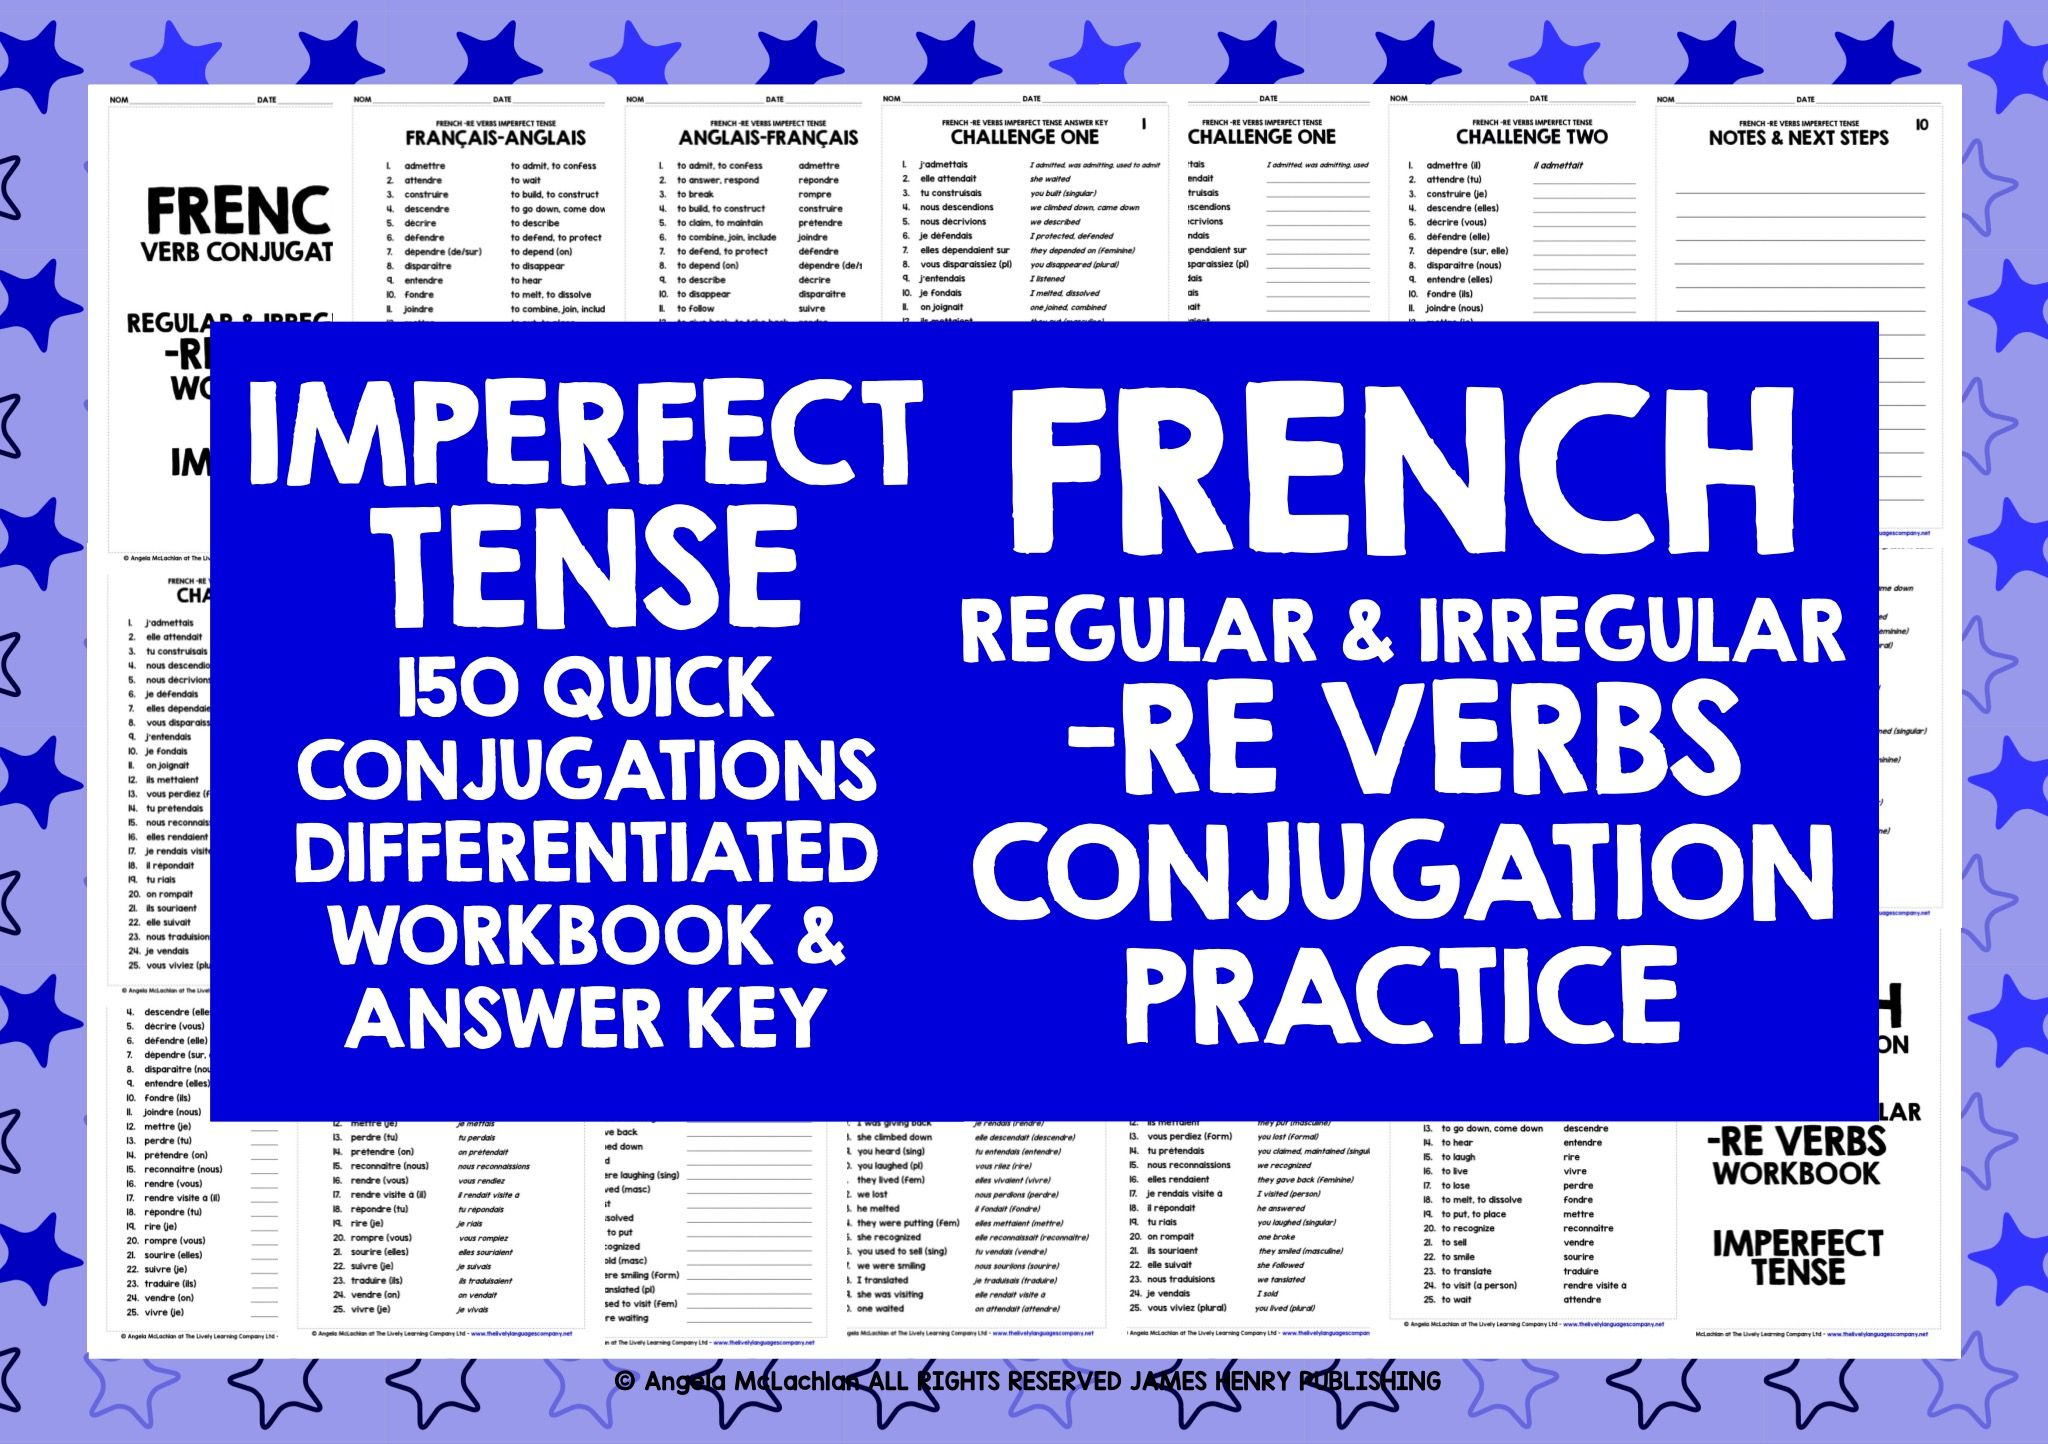 French Re Verbs Imperfect Tense